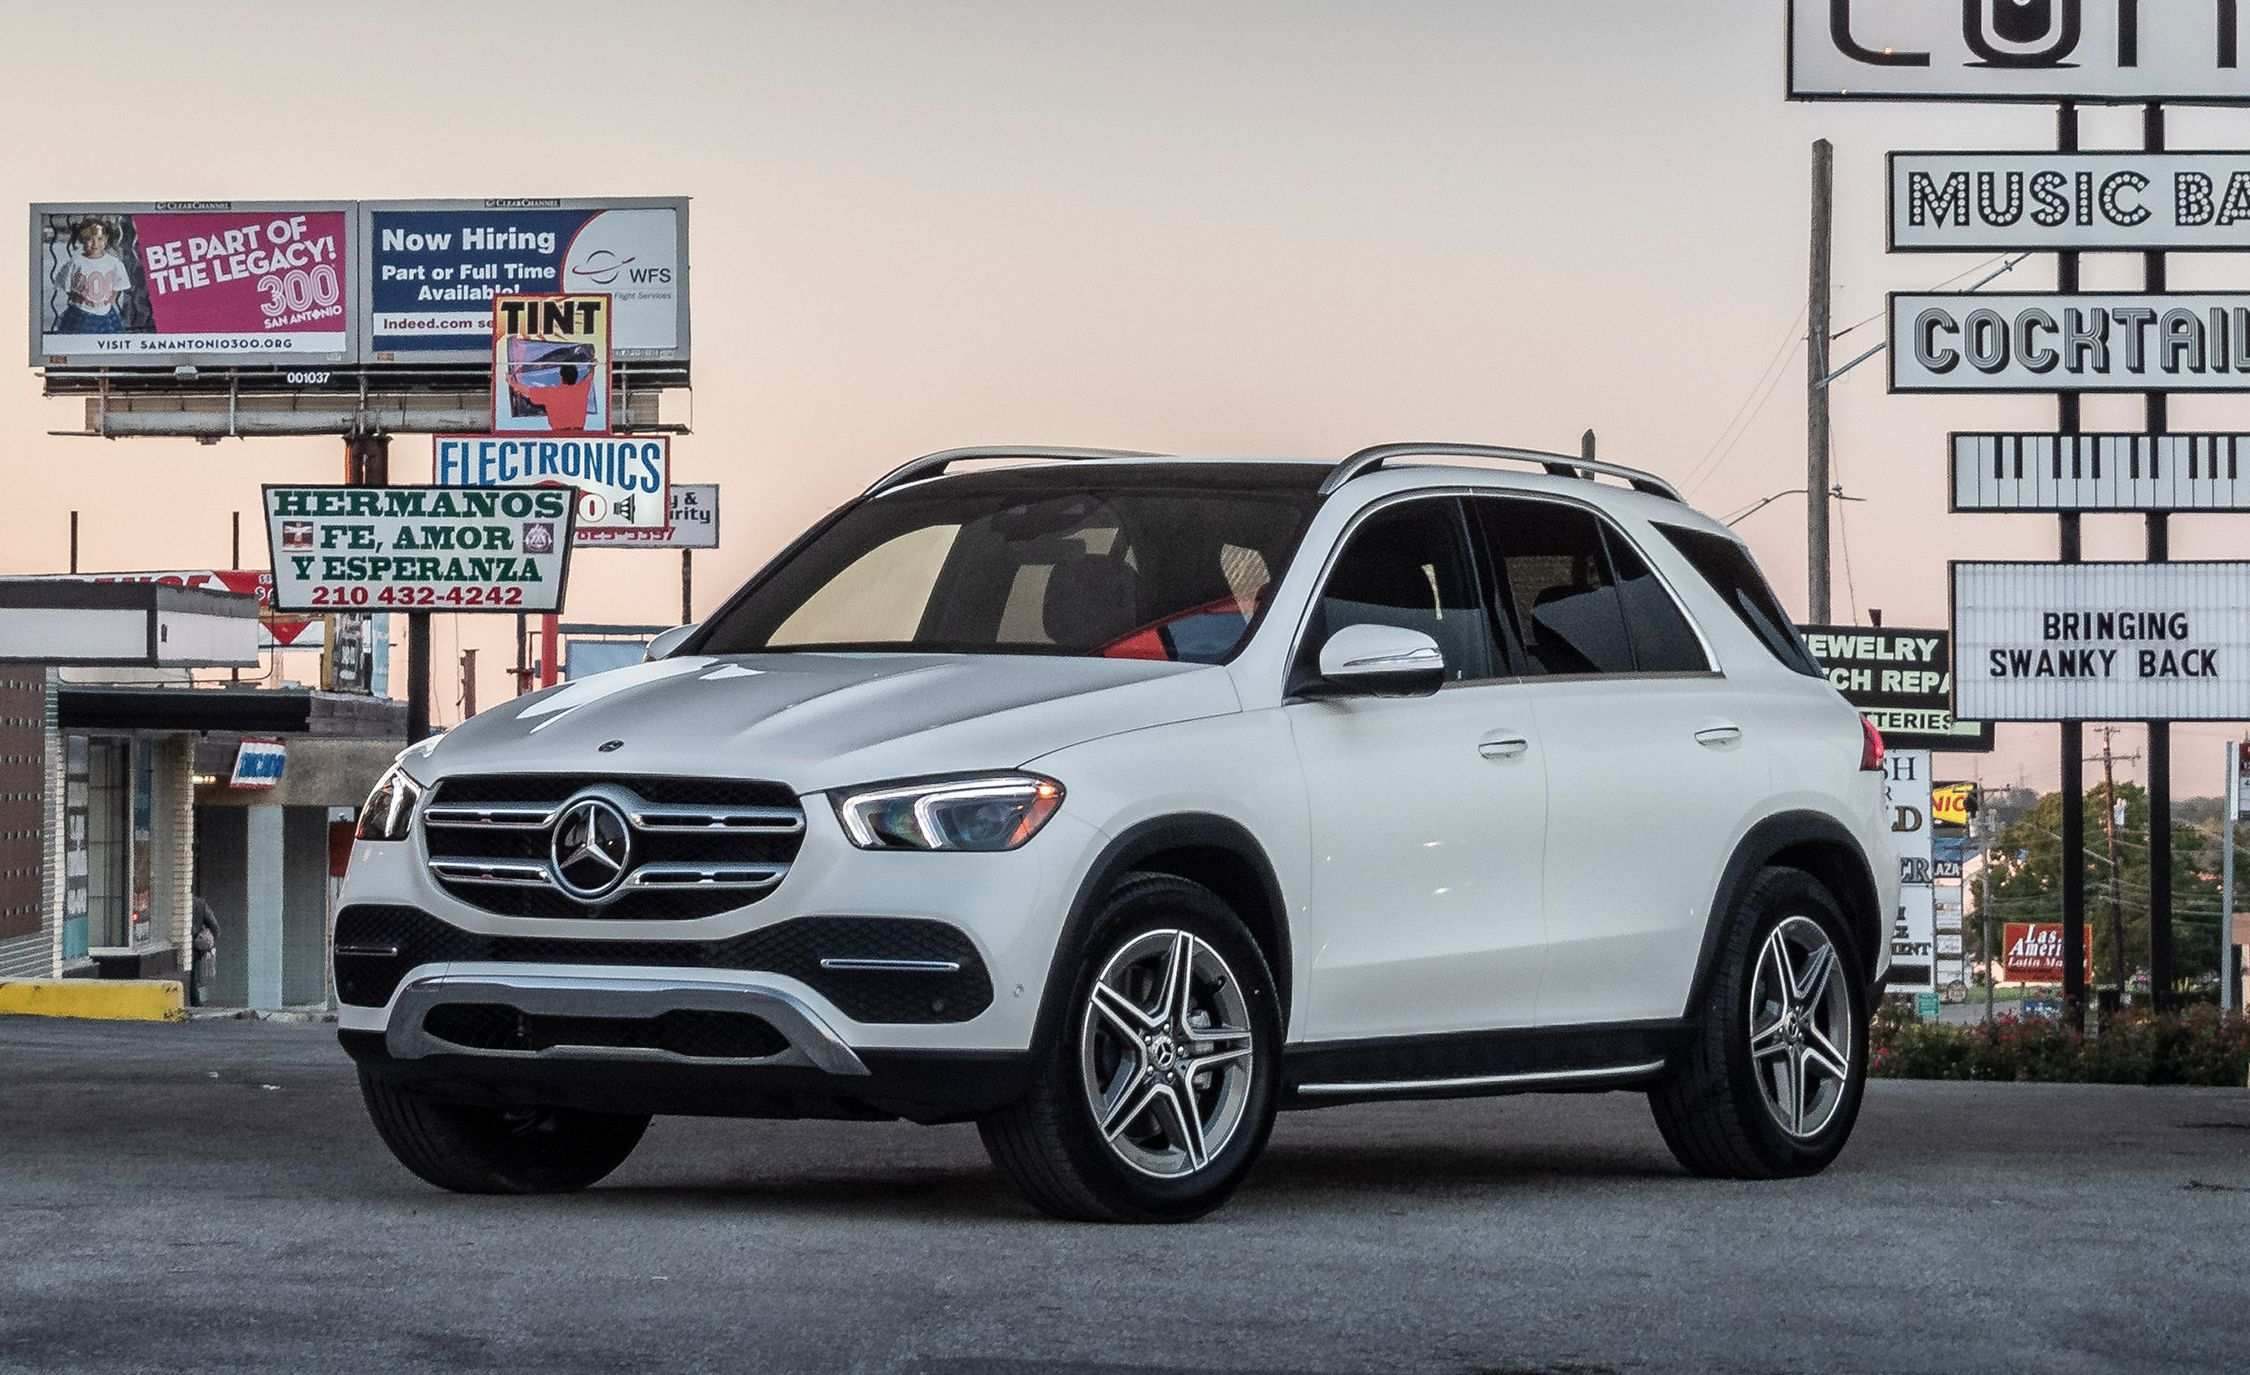 44 Gallery of Mercedes Benz Gle 2020 Launch Date Configurations with Mercedes Benz Gle 2020 Launch Date